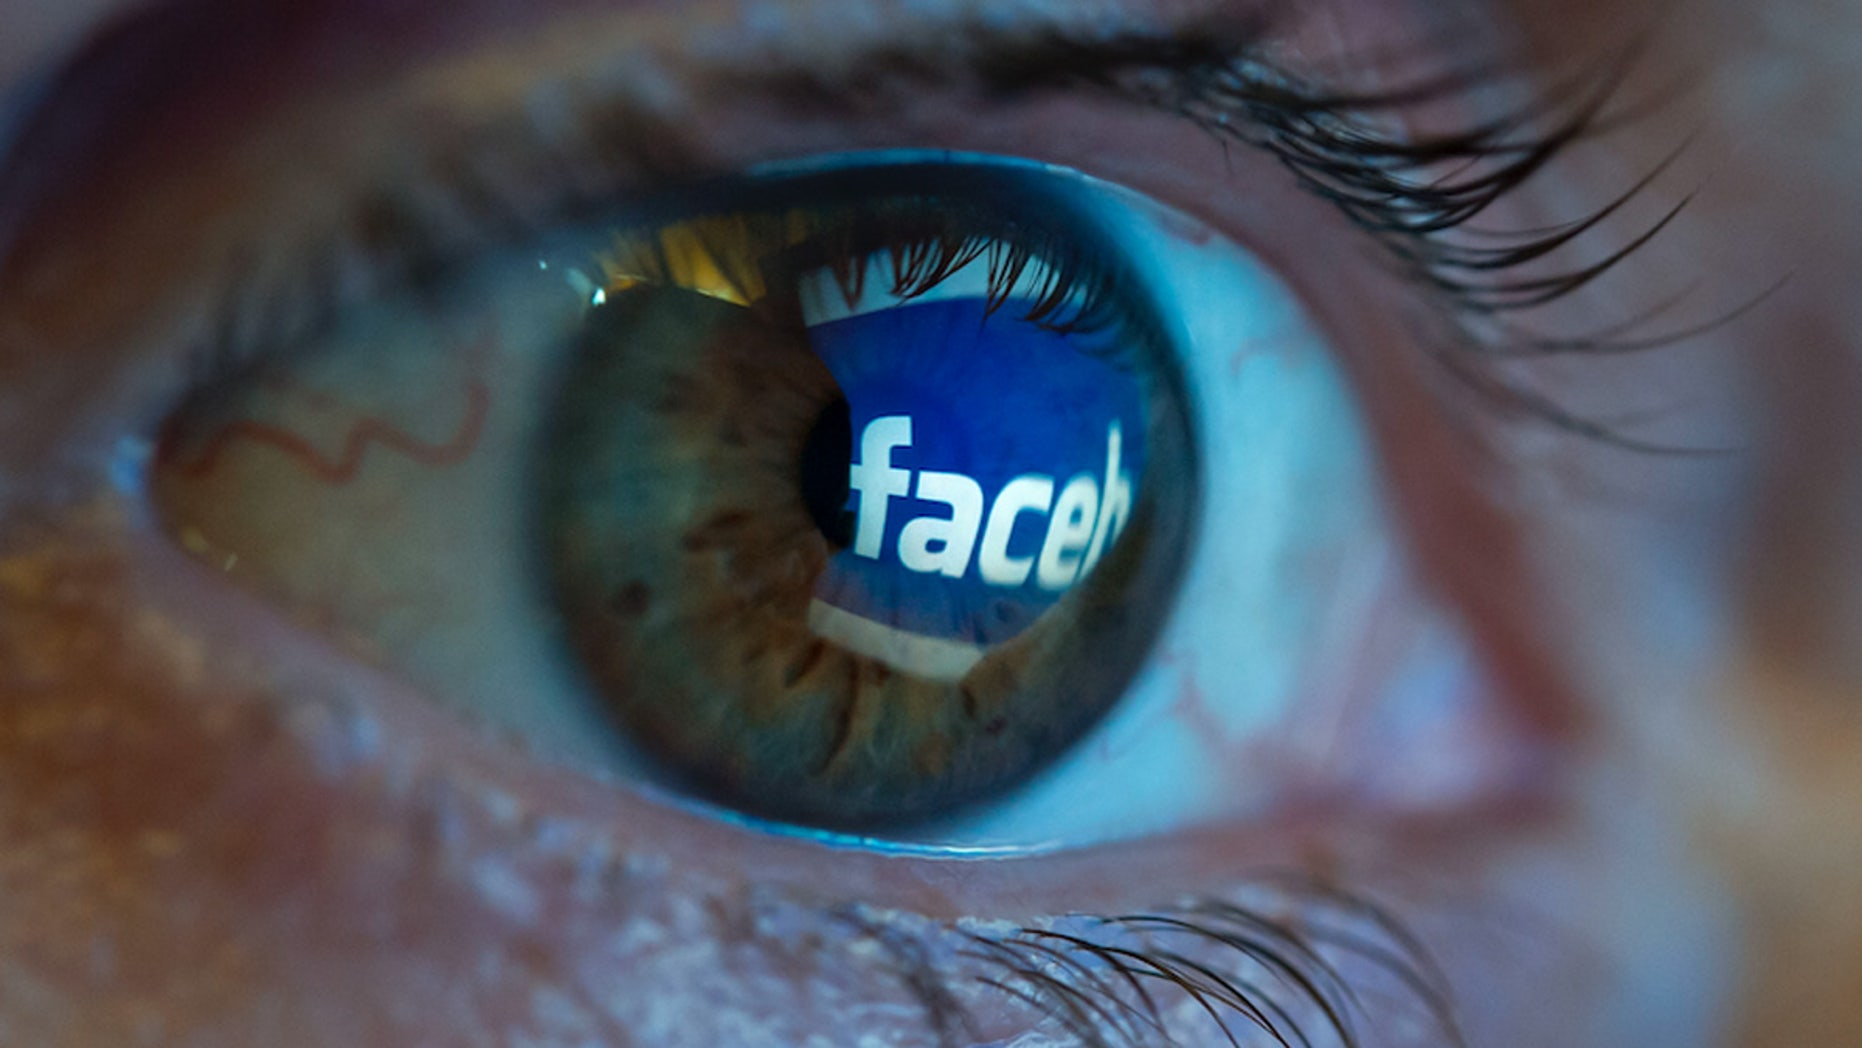 Facebook announced new steps to combat fake news and improve the quality of news on its platform.